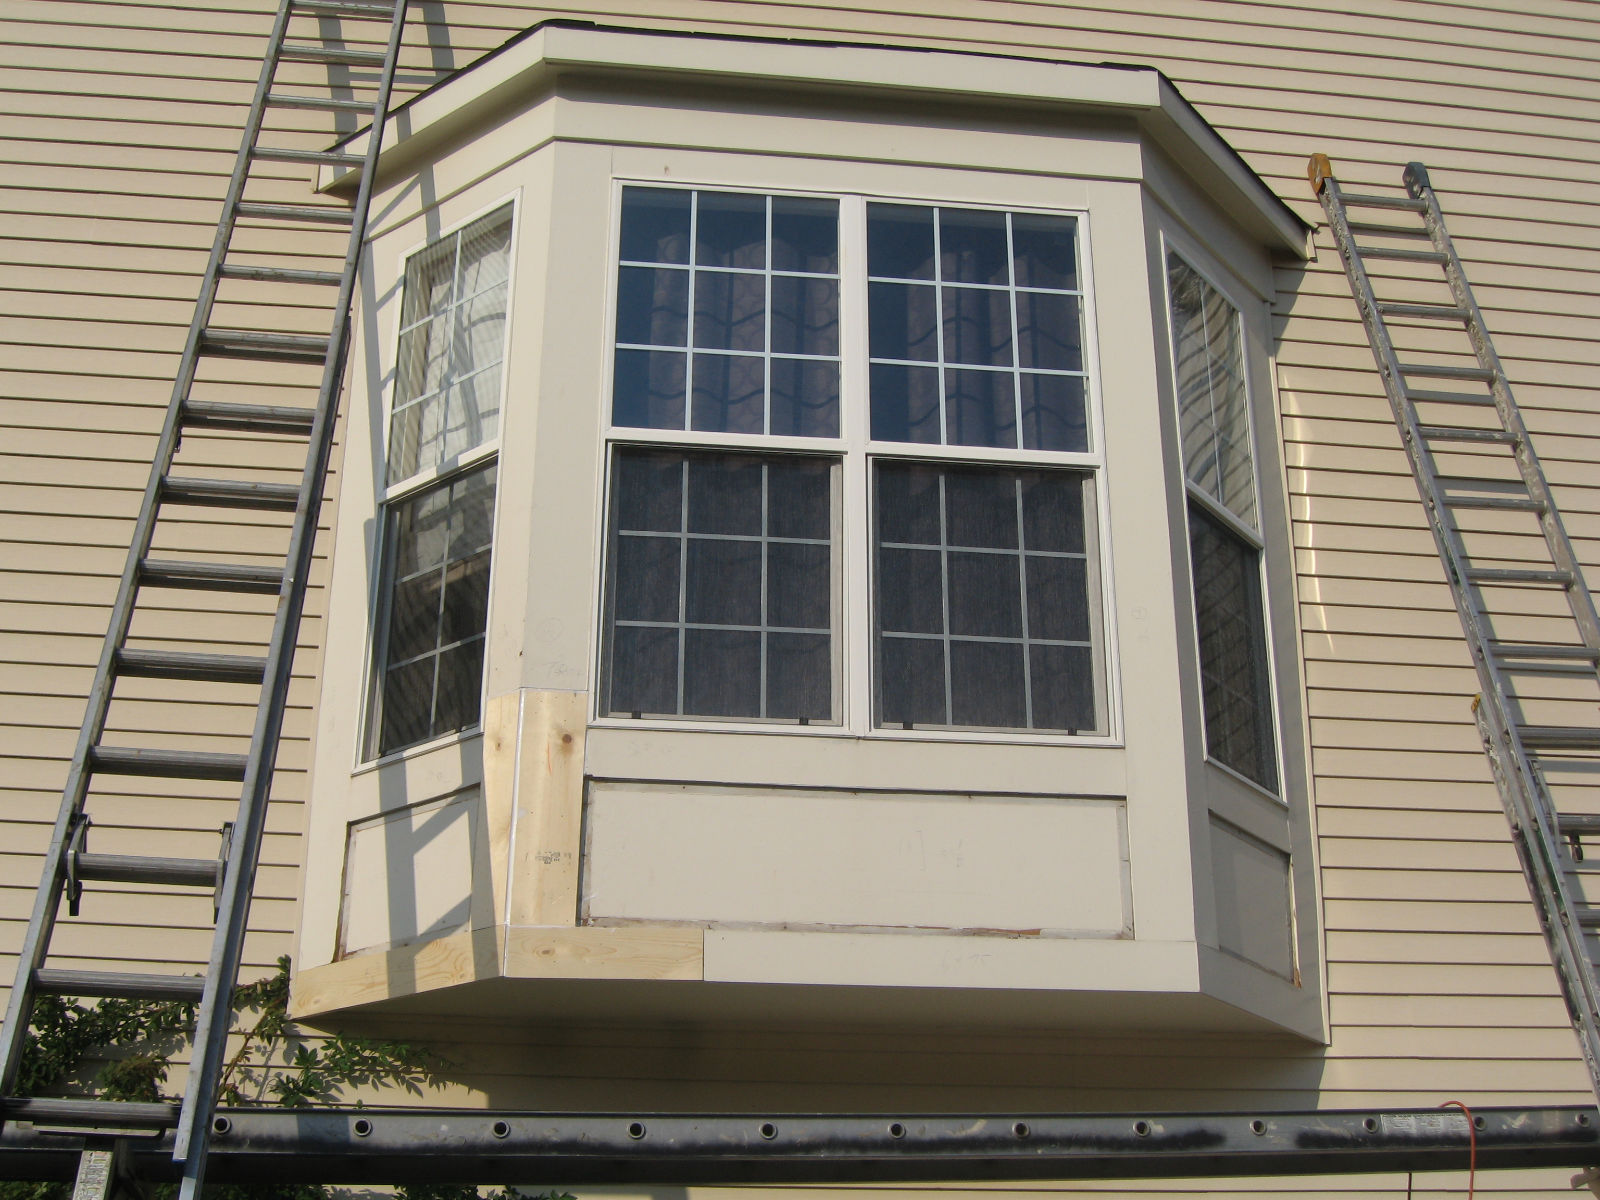 Bfc inc bay window capping wood replace for Bay window replacement windows